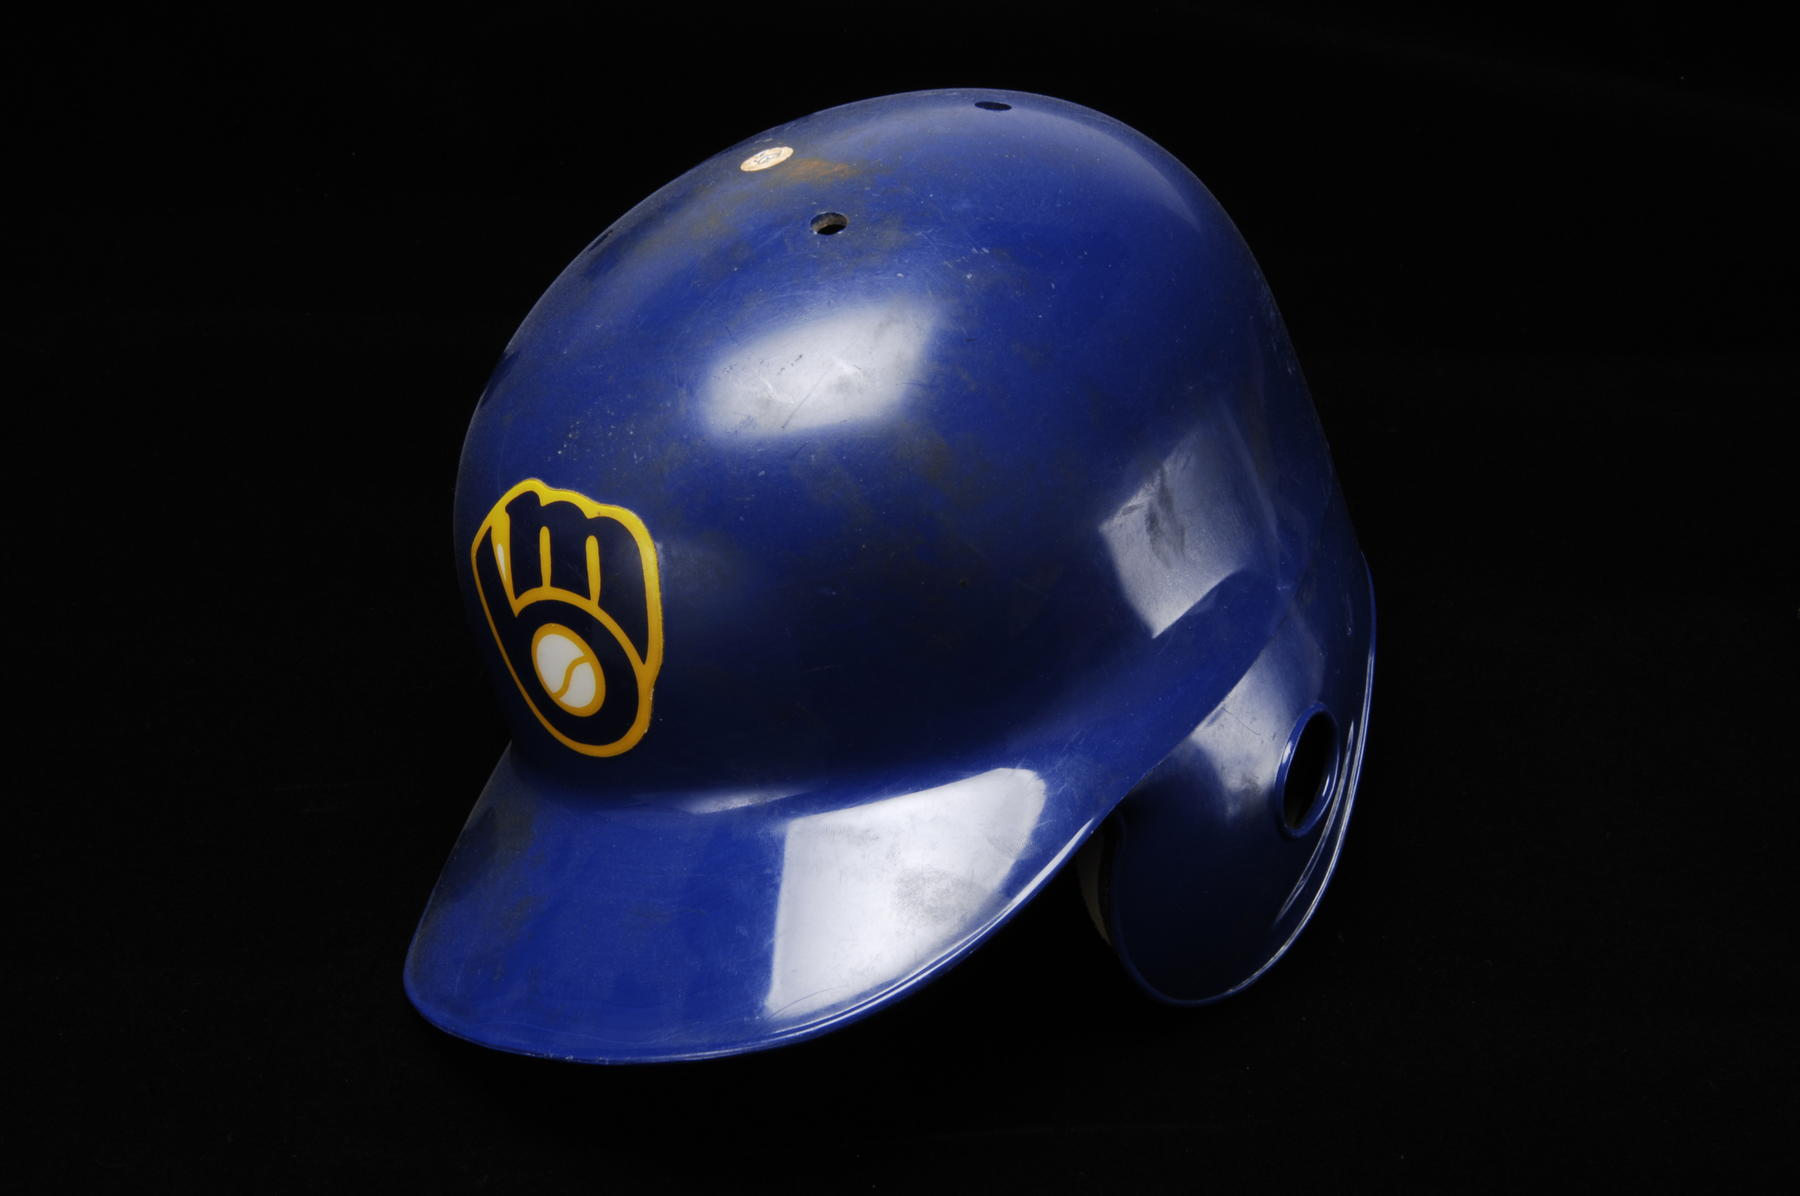 Helmet worn by Robin Yount when he singled off Cleveland's Jose Mesa on September 9, 1992 for his 3000th career hit - B-217-92 (Milo Stewart Jr./National Baseball Hall of Fame Library)